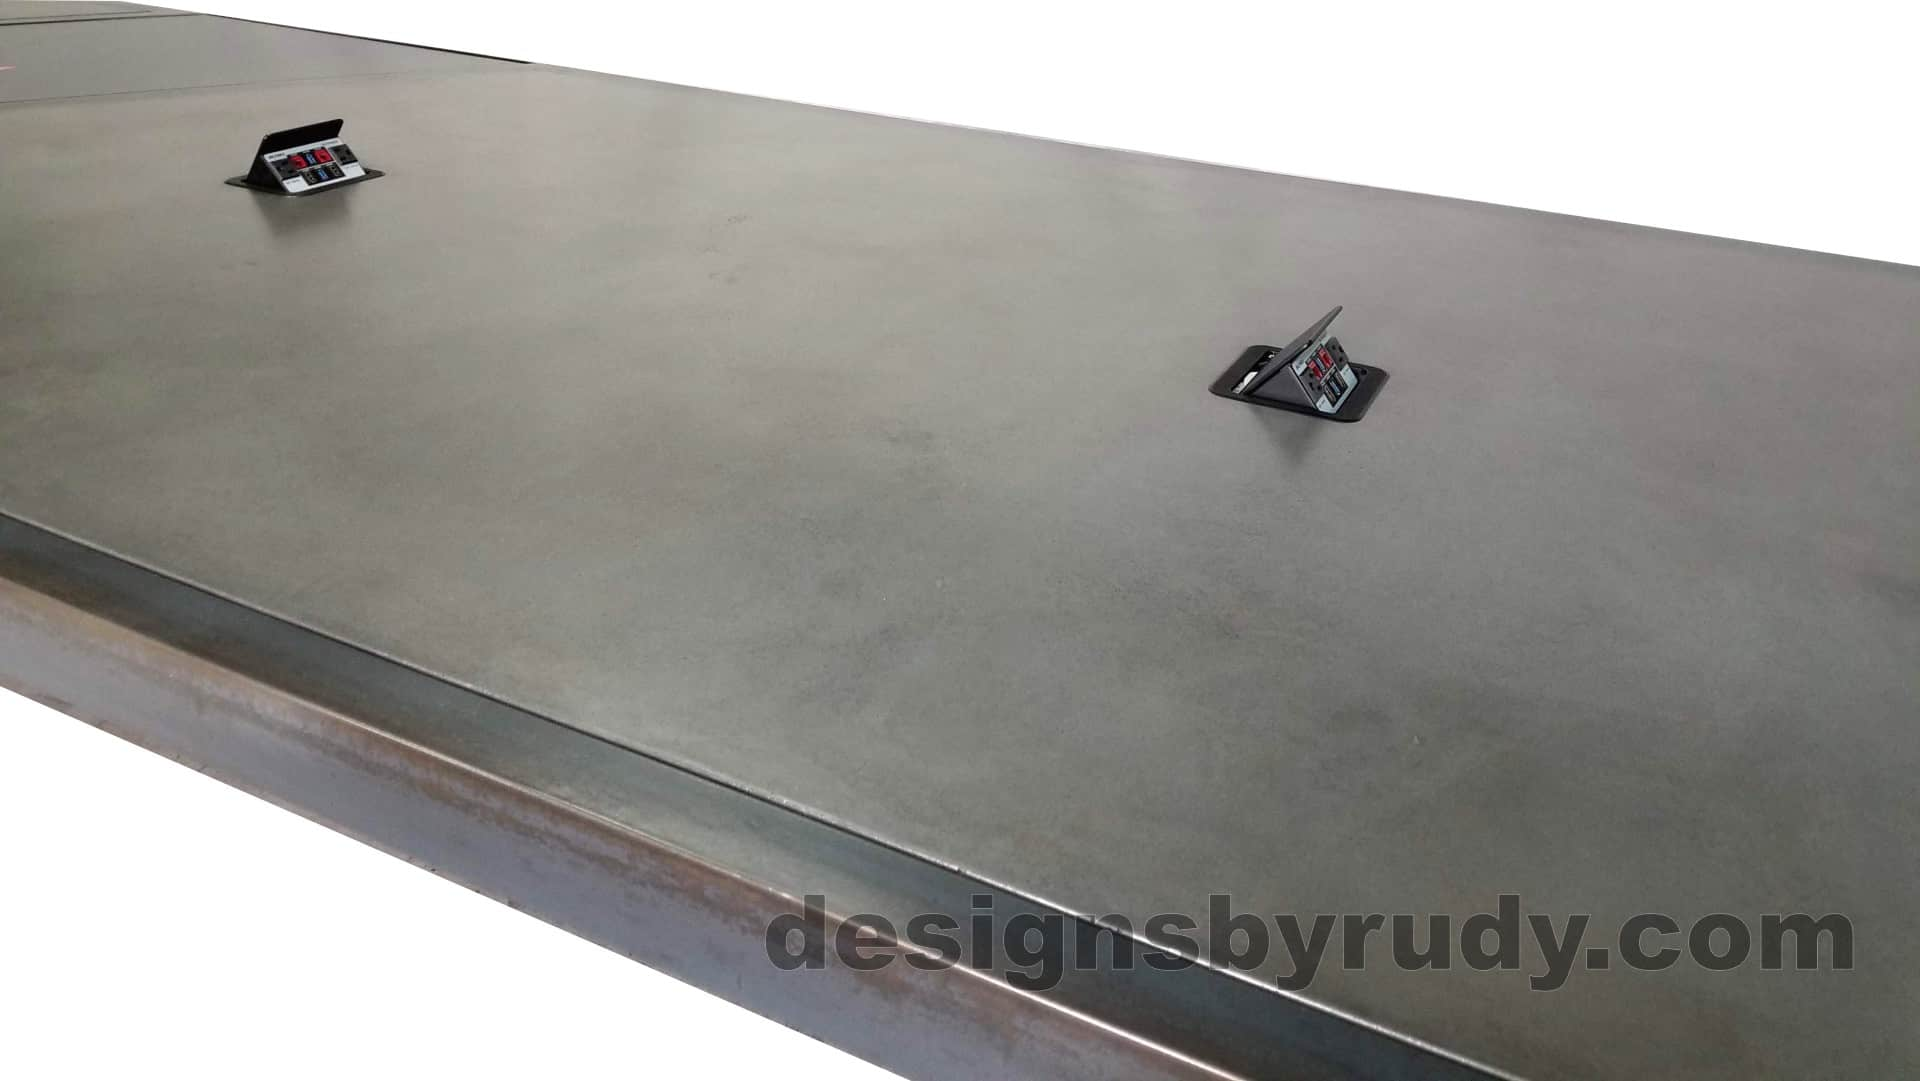 10 Steel and concrete conference table, design and fabrication by Designs by Rudy, AV ports view